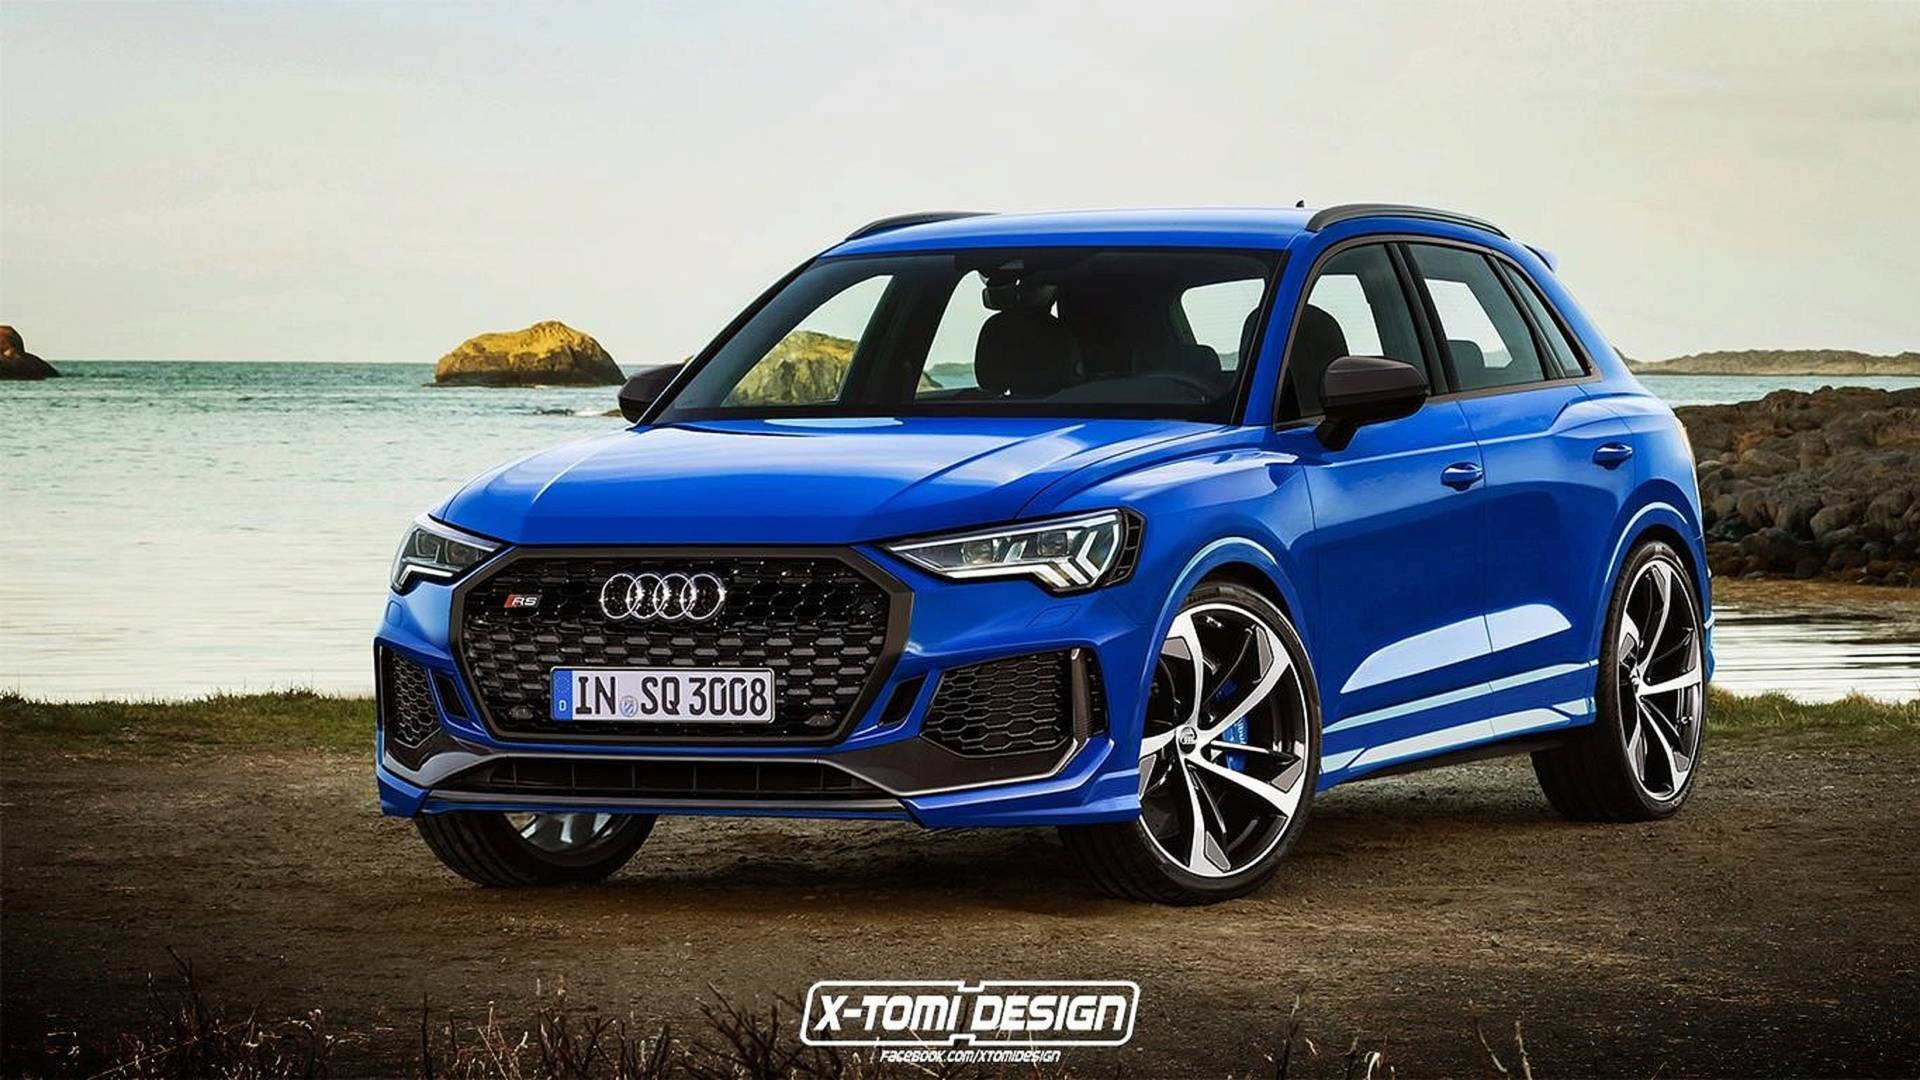 2019 Audi Q3 Rendered In Rs Trim Looks Freaking Fantastic intended